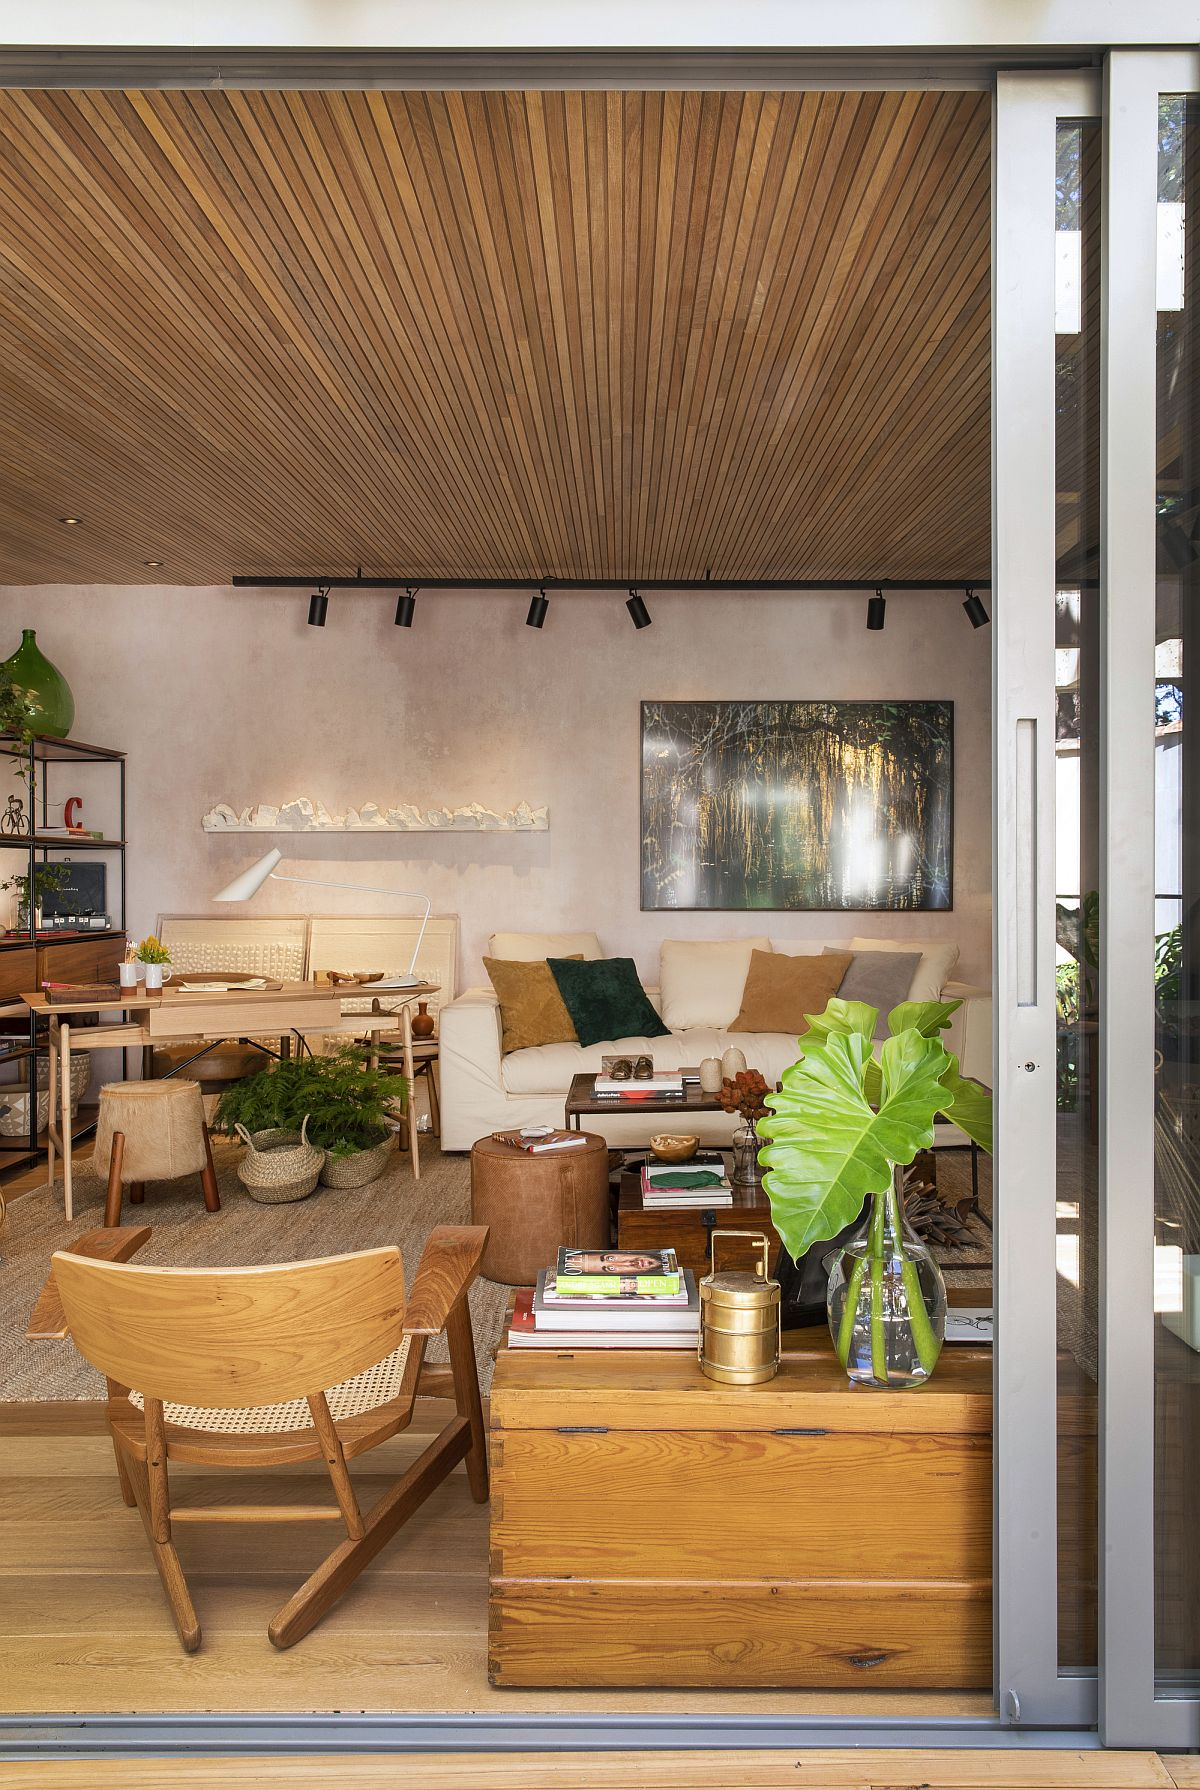 Sliding glass doors with wooden frame delineate the interior from the wooden deck ouside